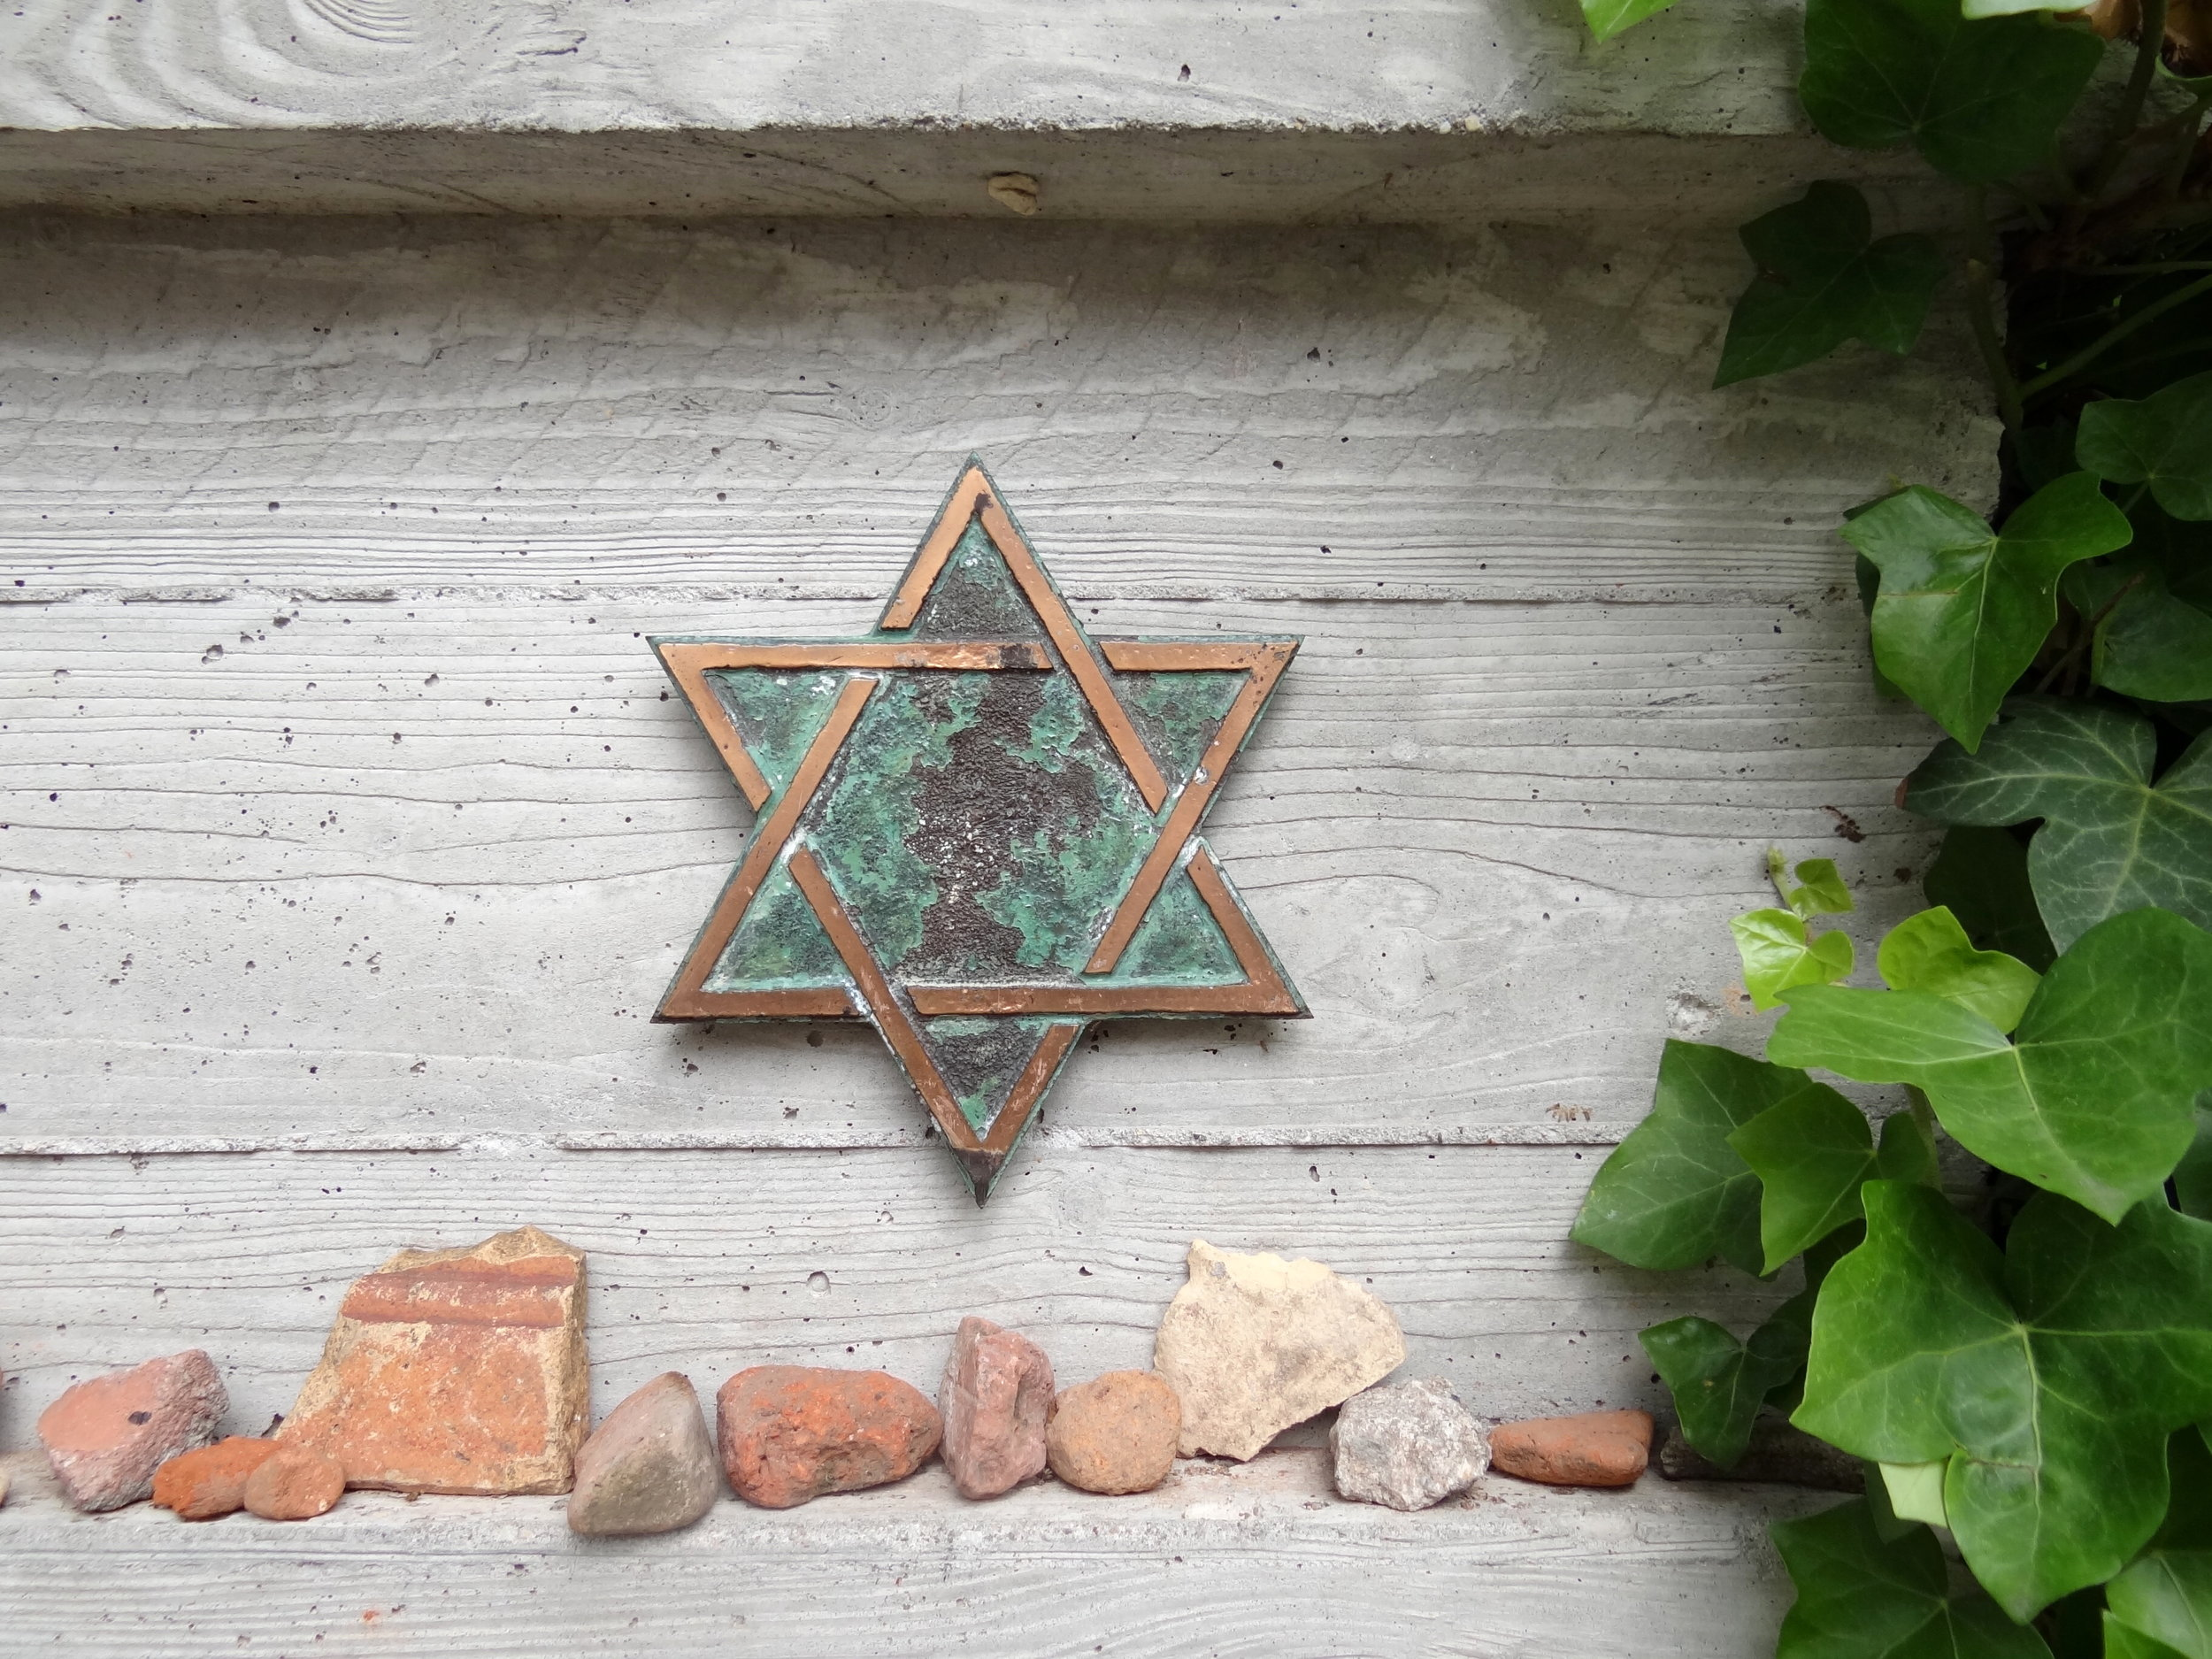 Still_Life_with_Star_of_David_and_Memorial_Stones_-_Jewish_Cemetery_-_Eastern_Berlin_-_Germany.jpg